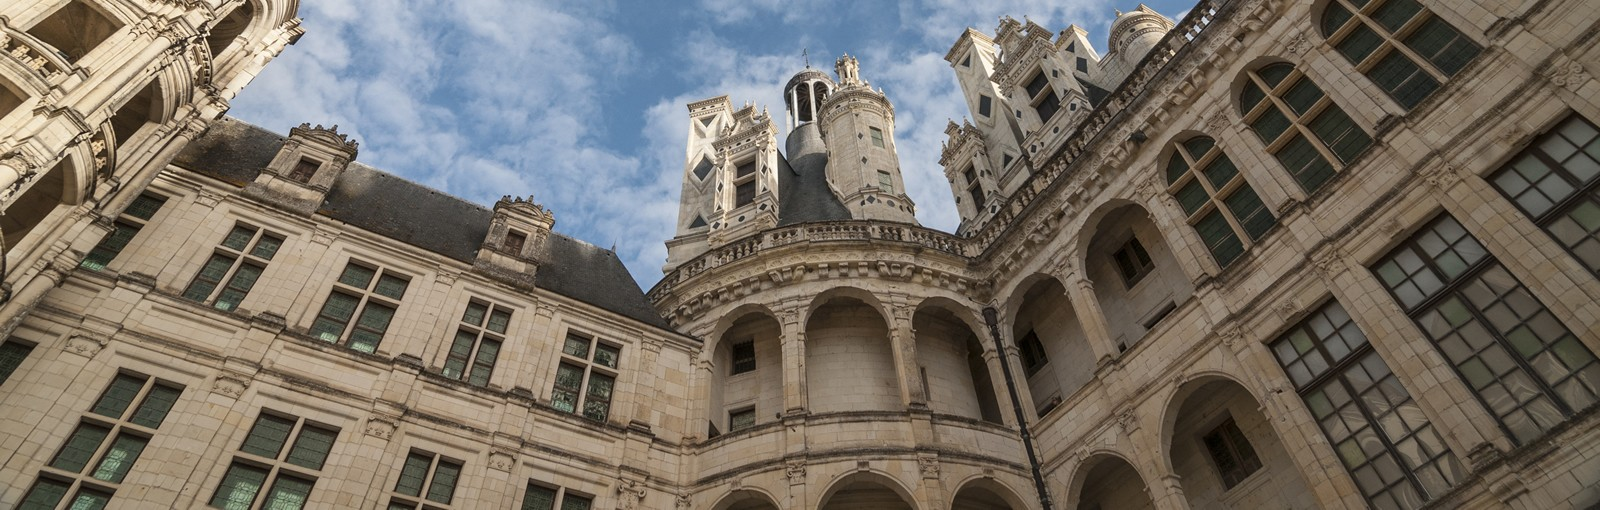 Tours The most famous castles of the Loire valley & Chartres - Loire valley - Multiday tours from Paris